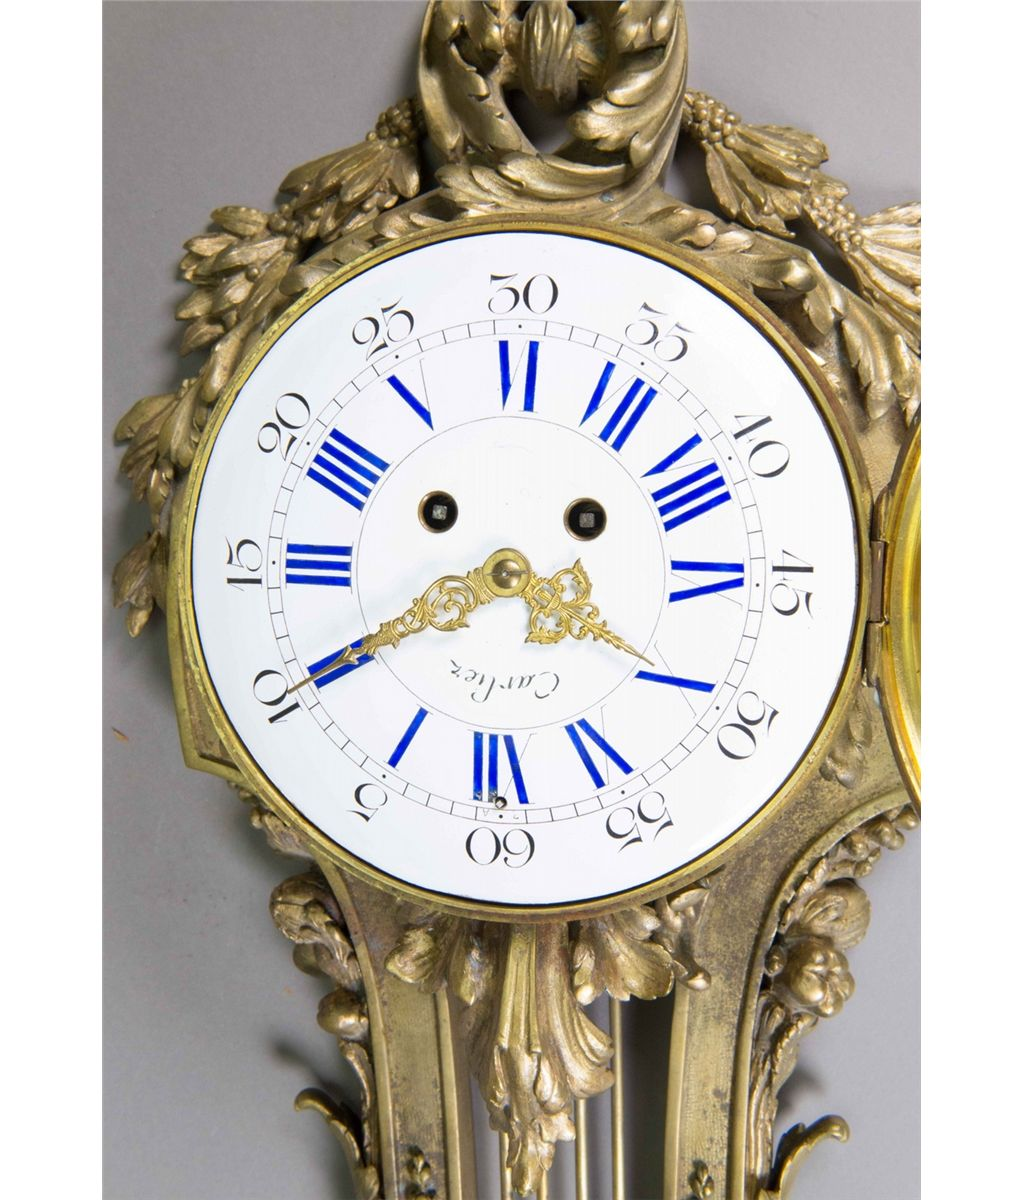 French cartier wall clock amipublicfo Images